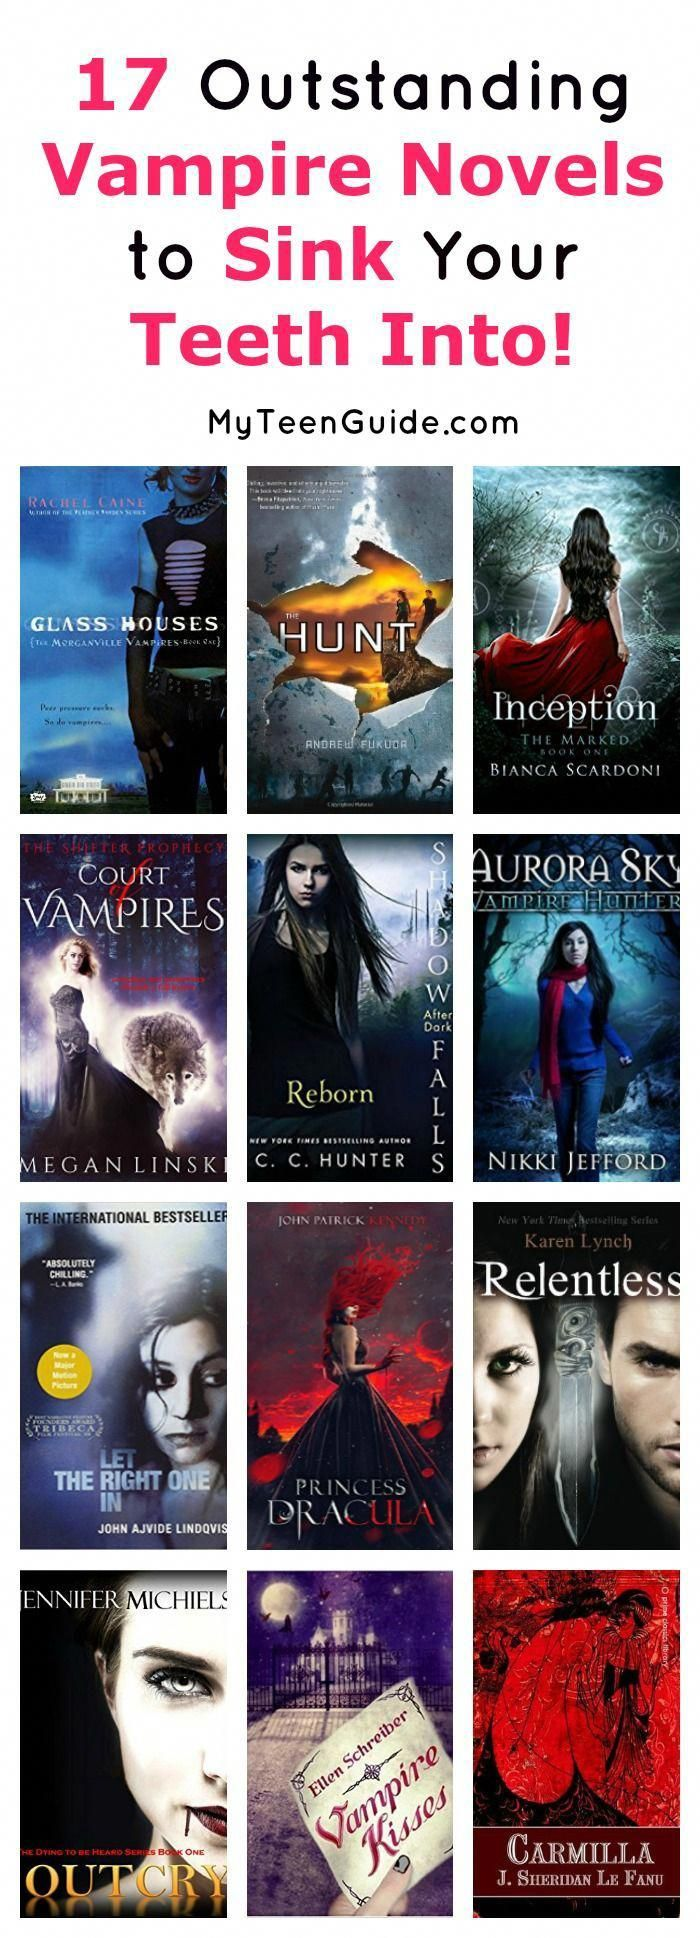 17 Outstanding Vampire Novels That You'll Love Sinking Your Teeth Into #bookstoread